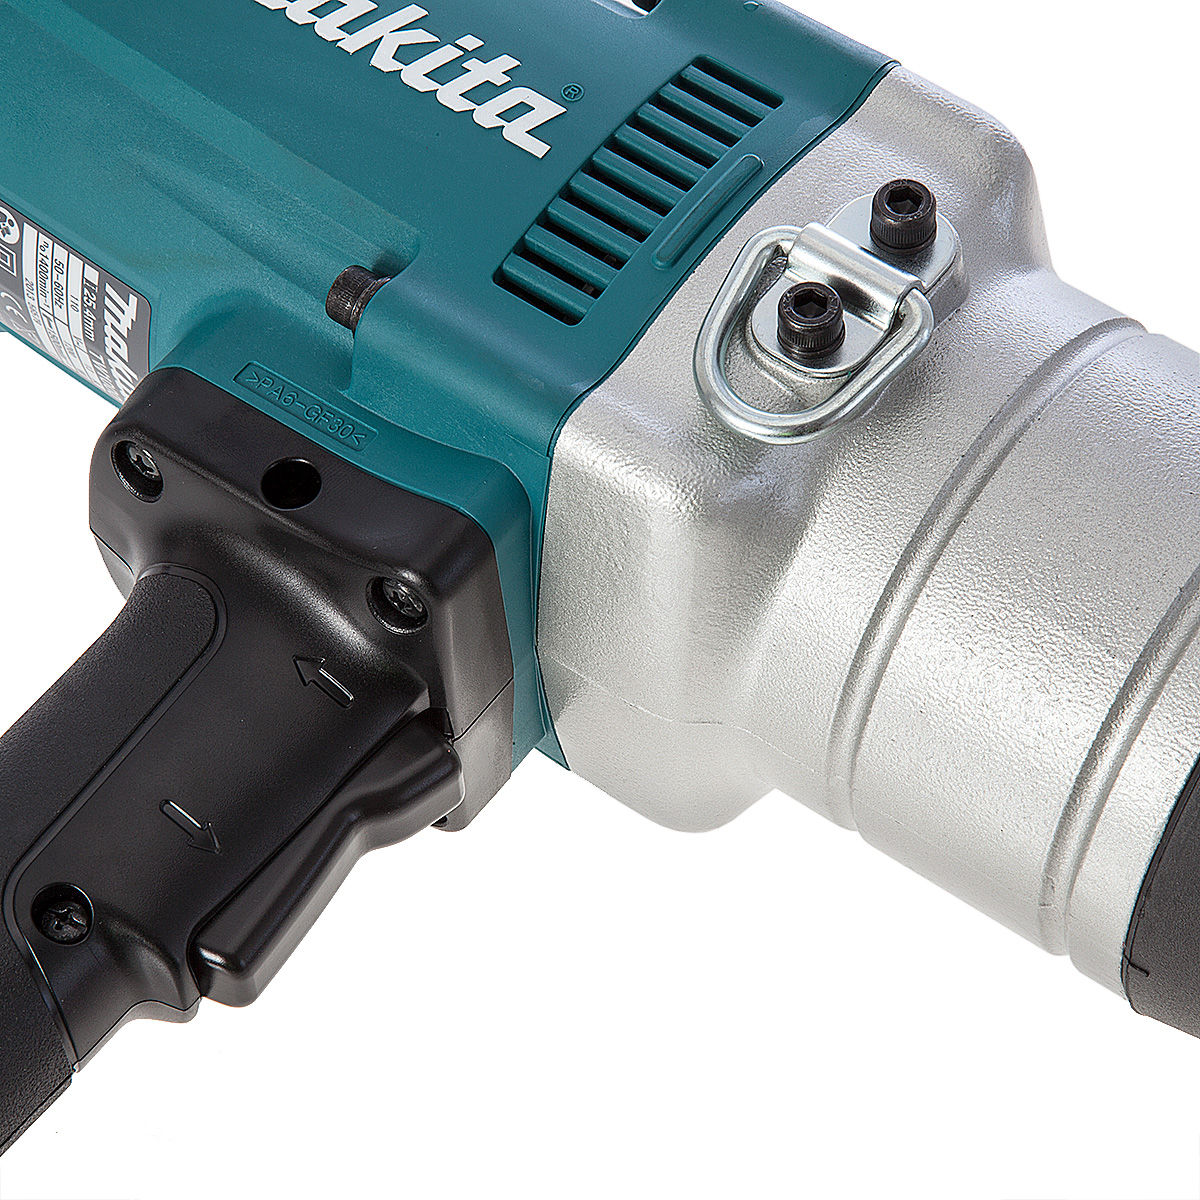 Makita Tw1000 Impact Wrench 1 Inch 25mm Square Drive 110v